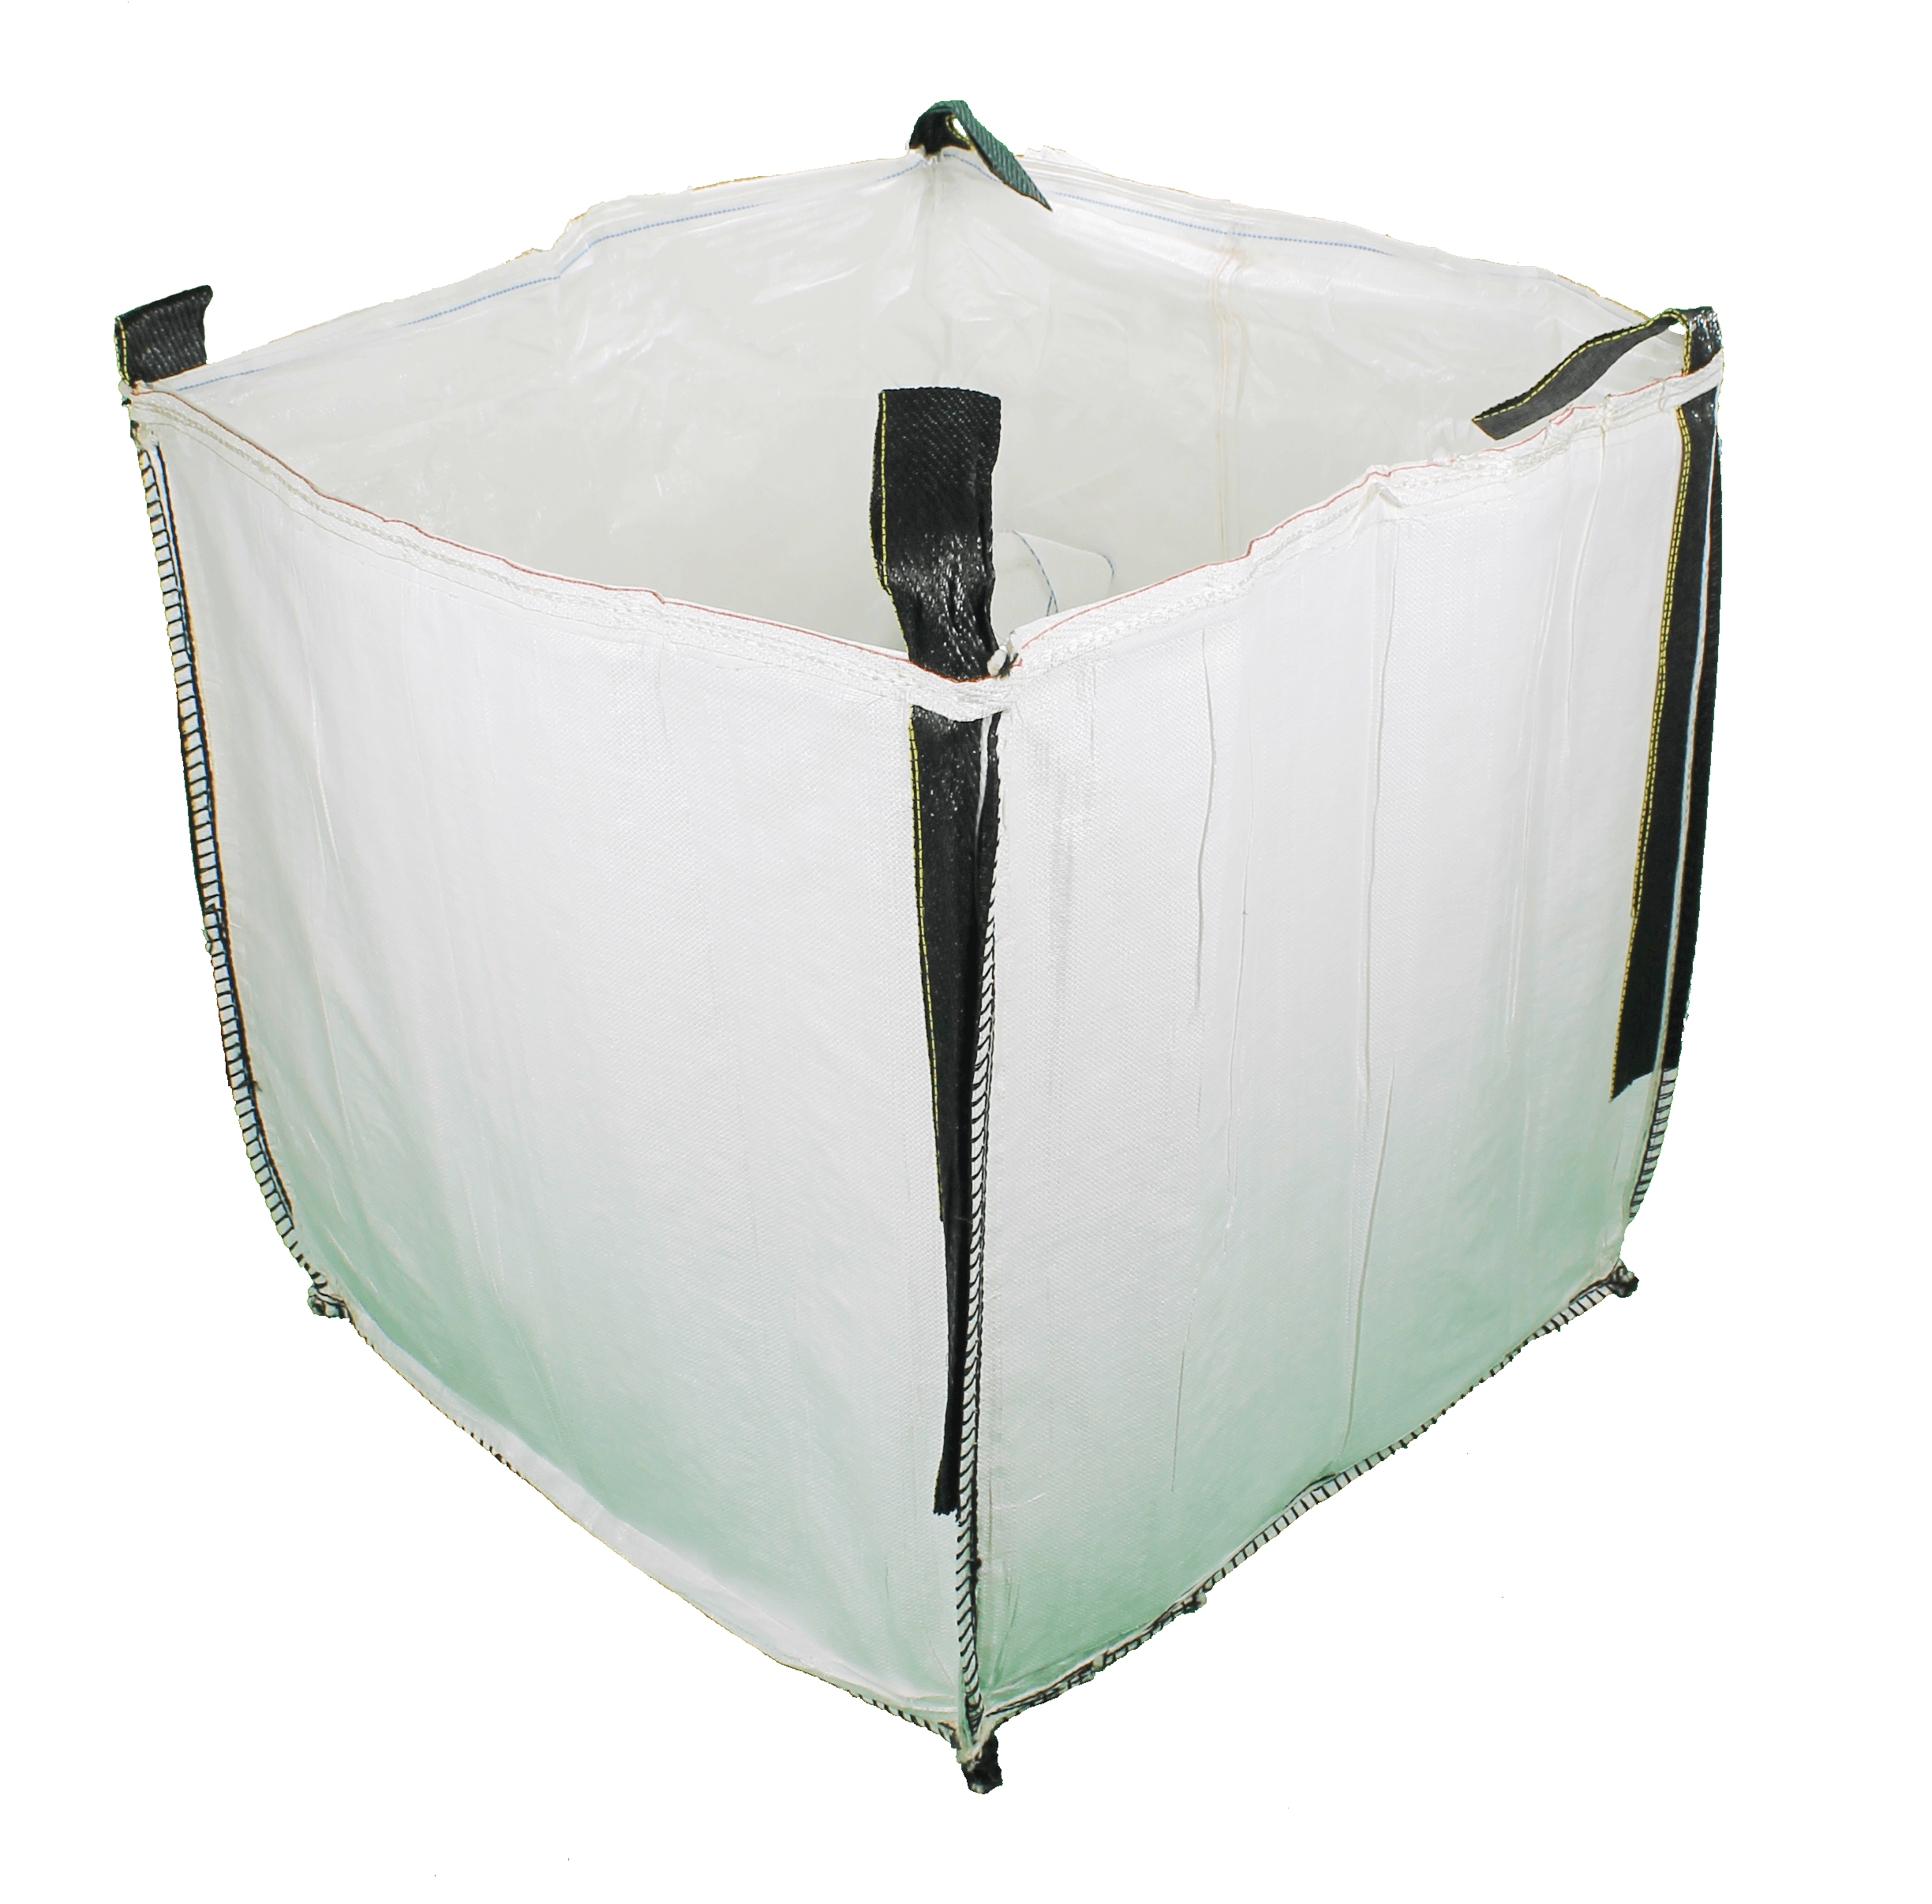 Hard Wall FIBC Bag STHD-363640 36